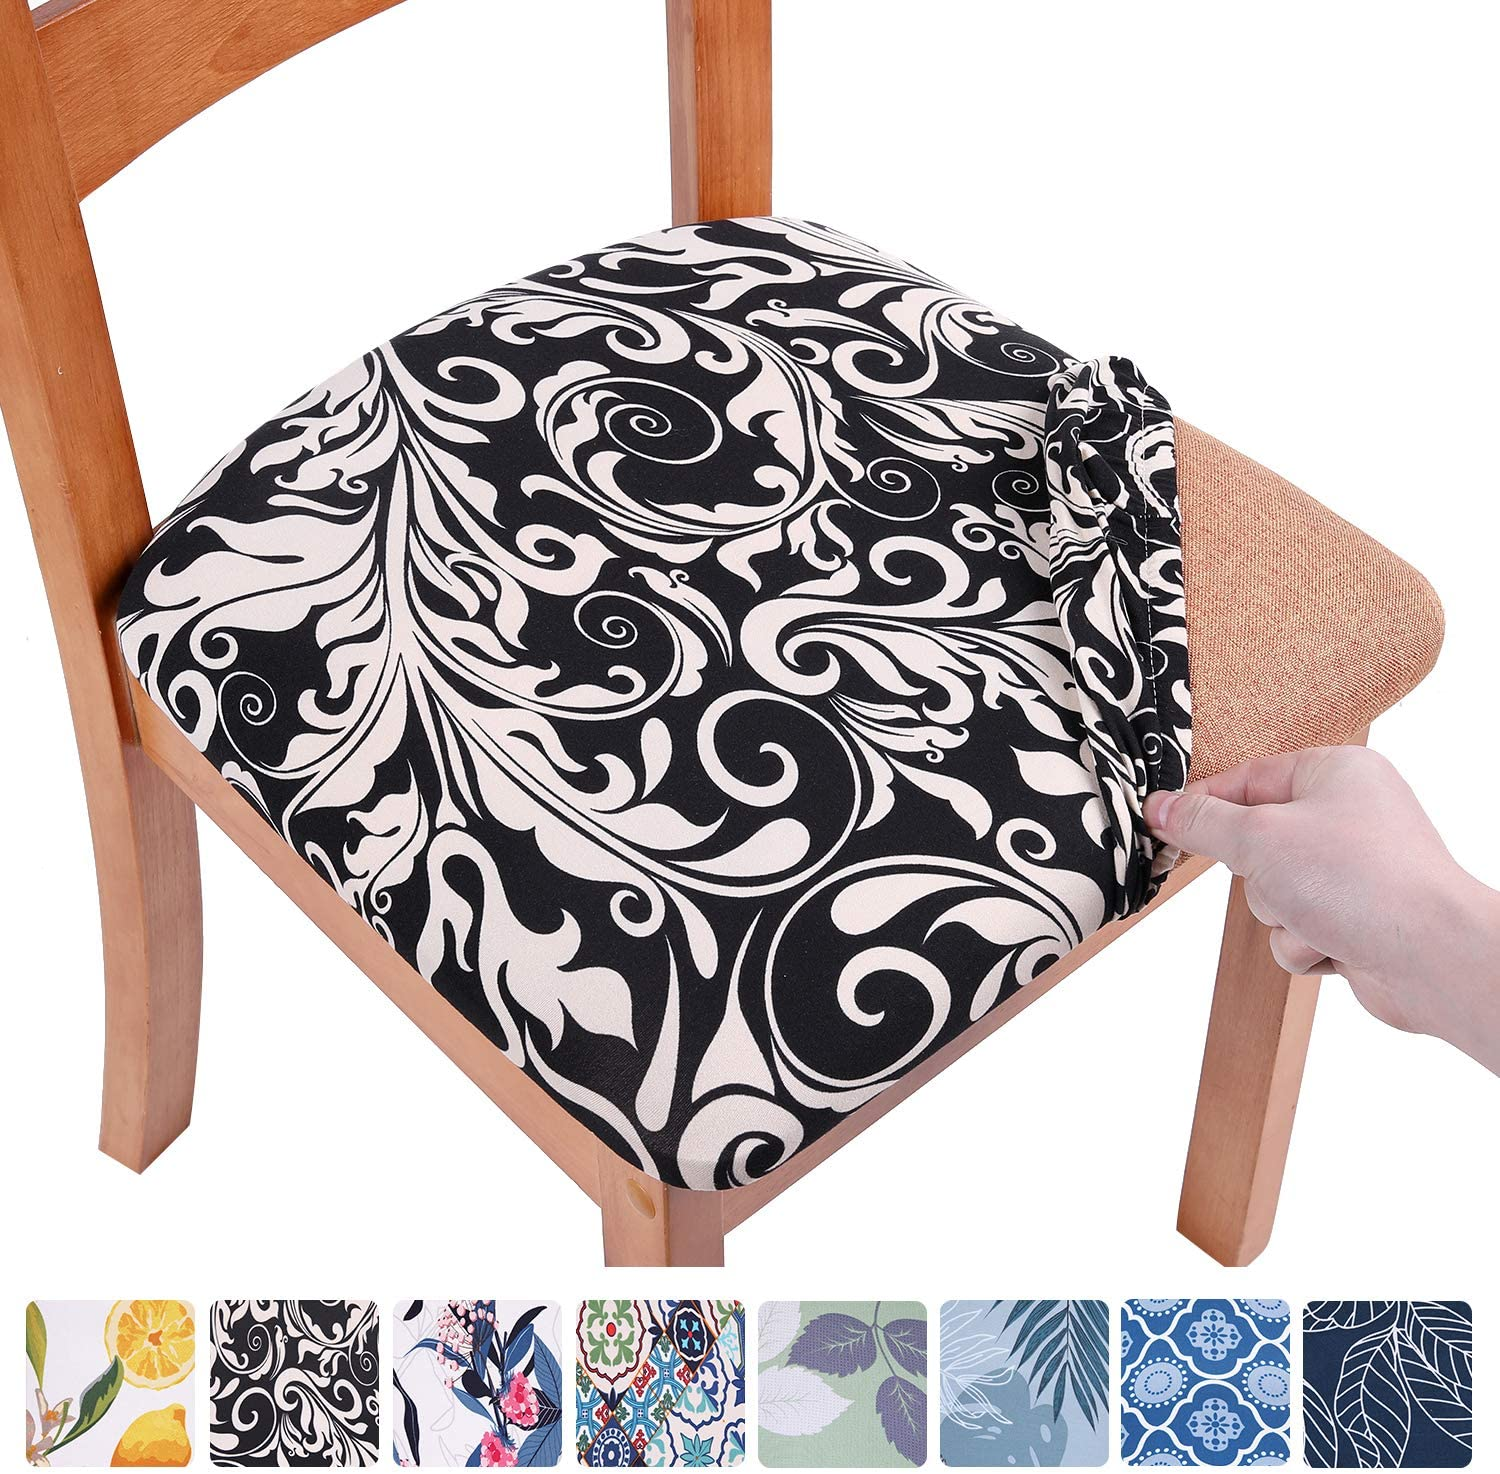 smiry Printed Dining Chair Seat Covers - Stretchy Removable Washable Upholstered Chair Seat Slipcover Protector (Set of 2, Black Baroque)